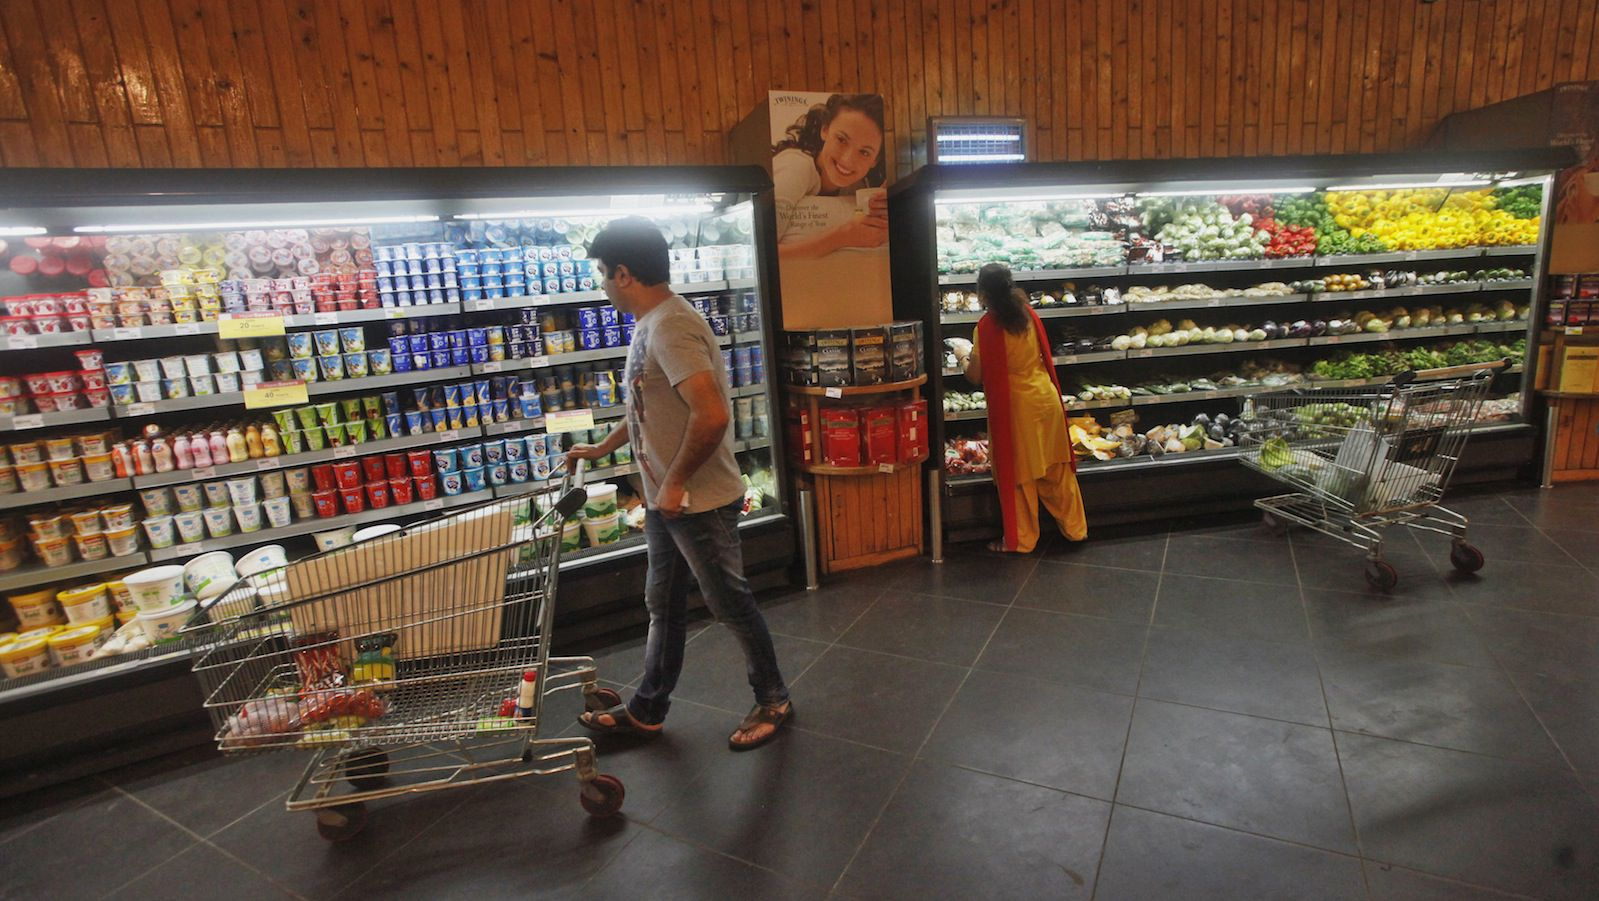 Customers shop inside a HyperCity supermarket in Mumbai September 14, 2012. Turning a profit in India for global supermarkets is widely expected to prove even tougher than in China, where Wal-Mart Stores Inc loses money after a dozen years and restrictions are fewer than those imposed by India. Picture taken September 14, 2012.  REUTERS/Vivek Prakash (INDIA - Tags: BUSINESS POLITICS FOOD) - RTR384VG